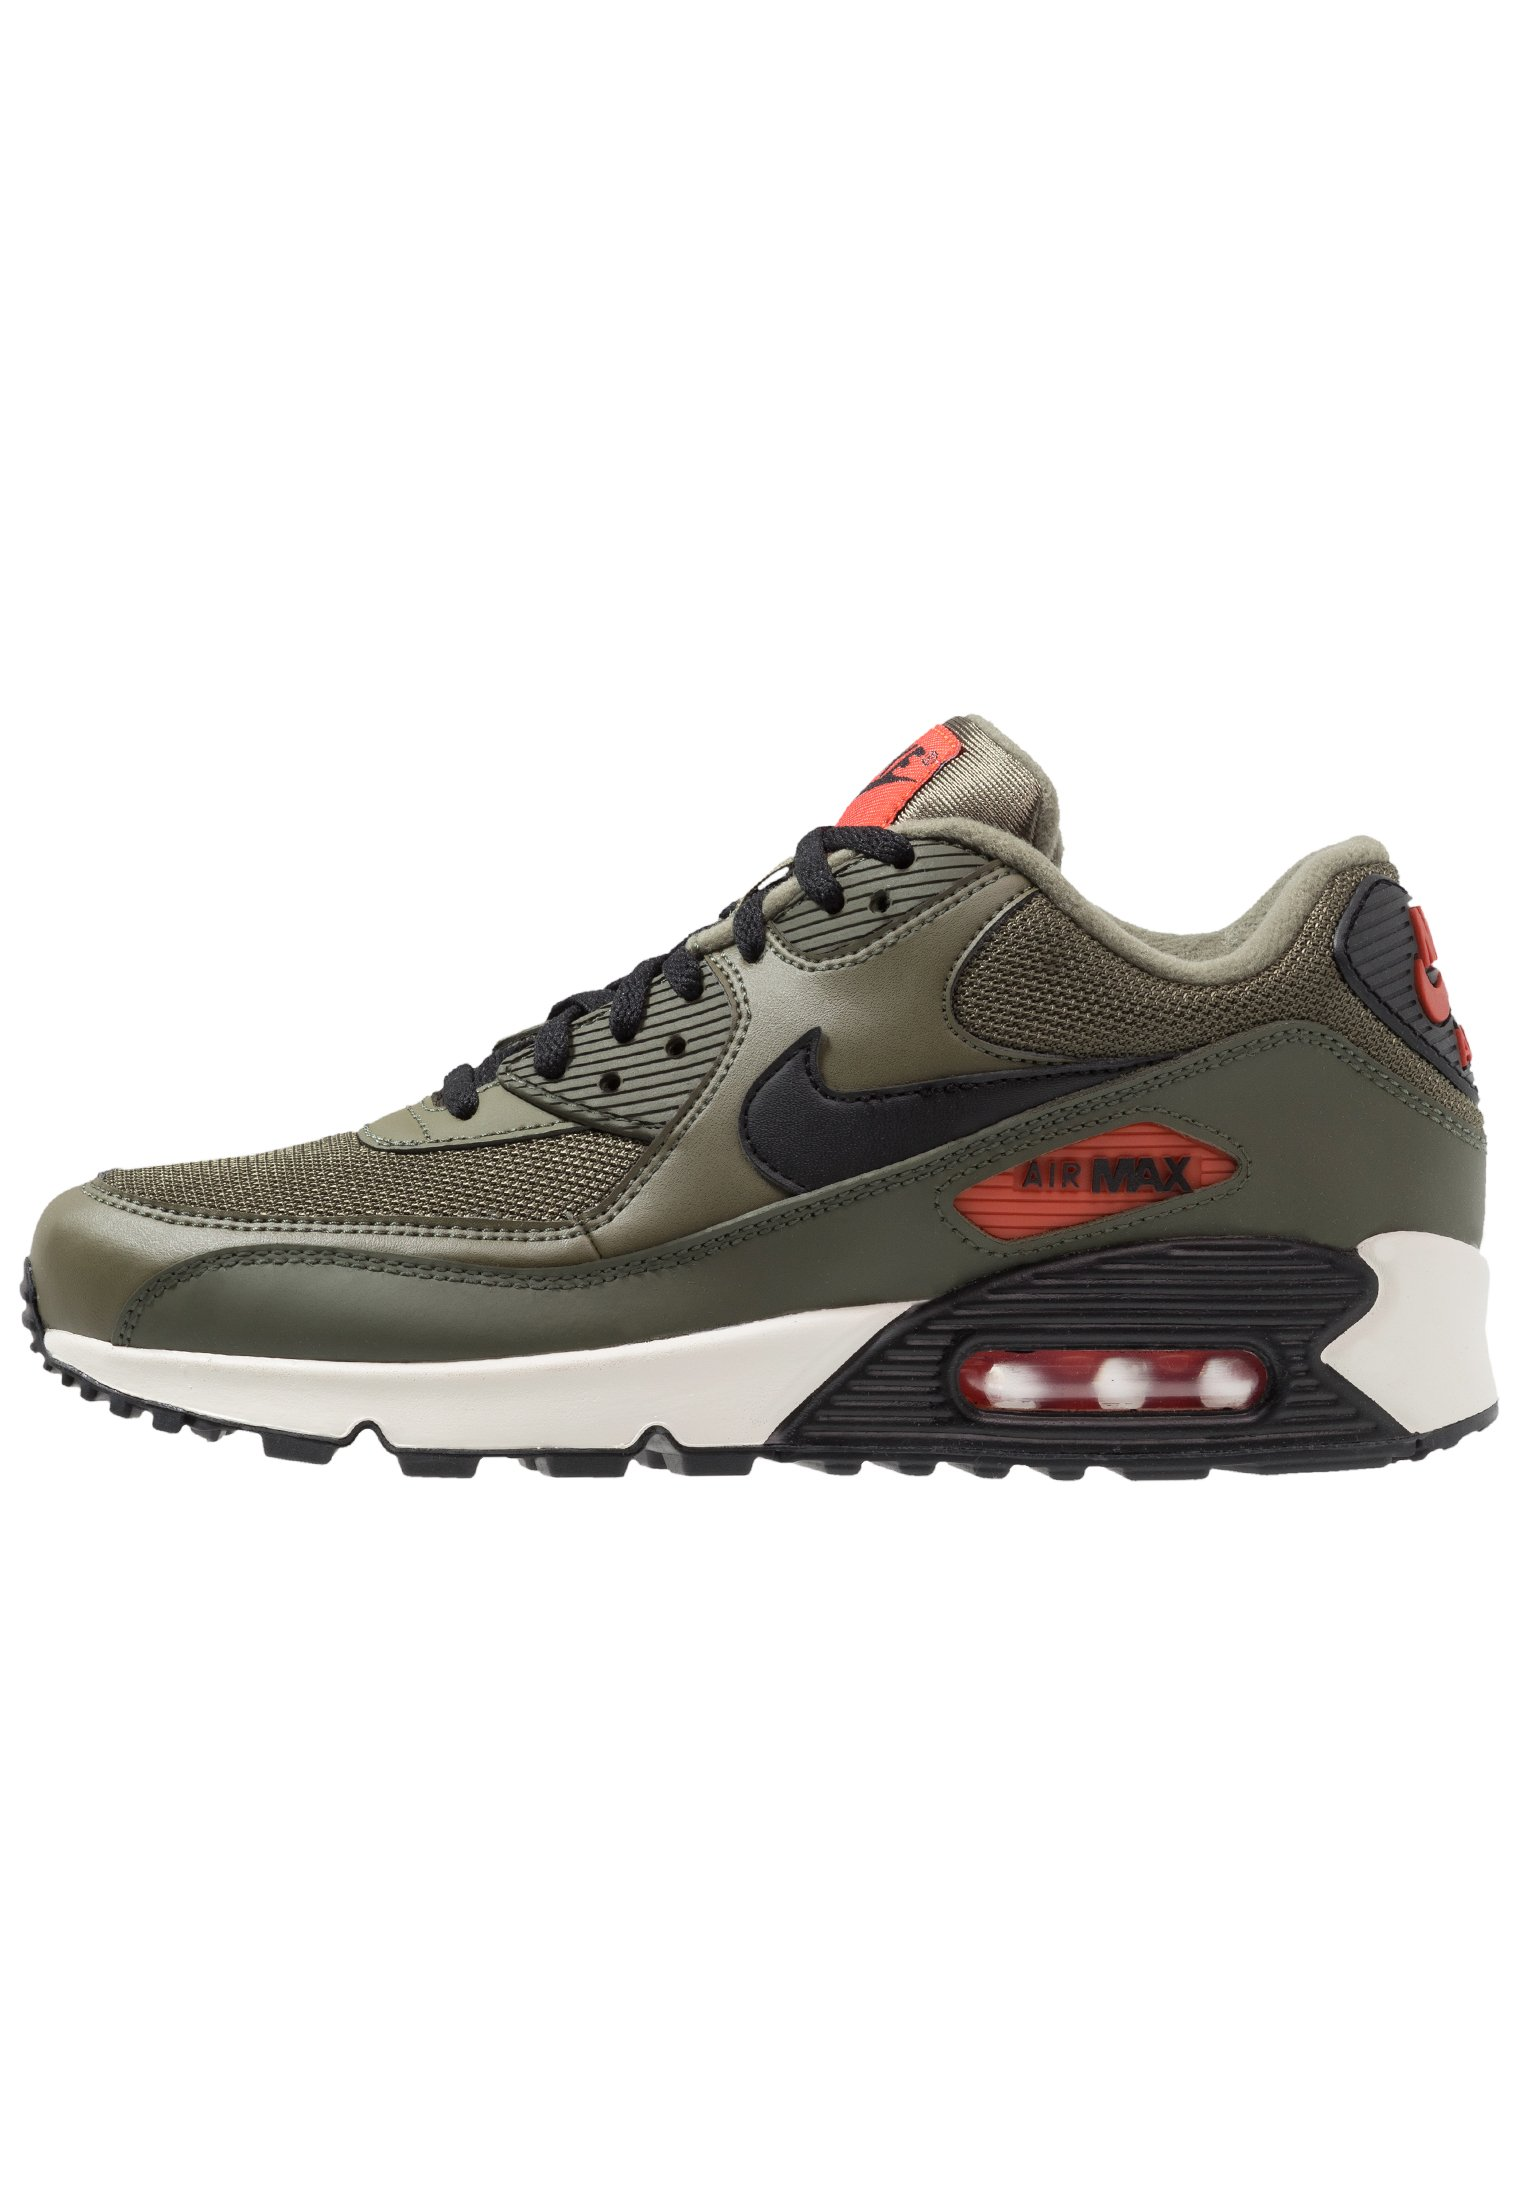 air max 90 essential uomo olive